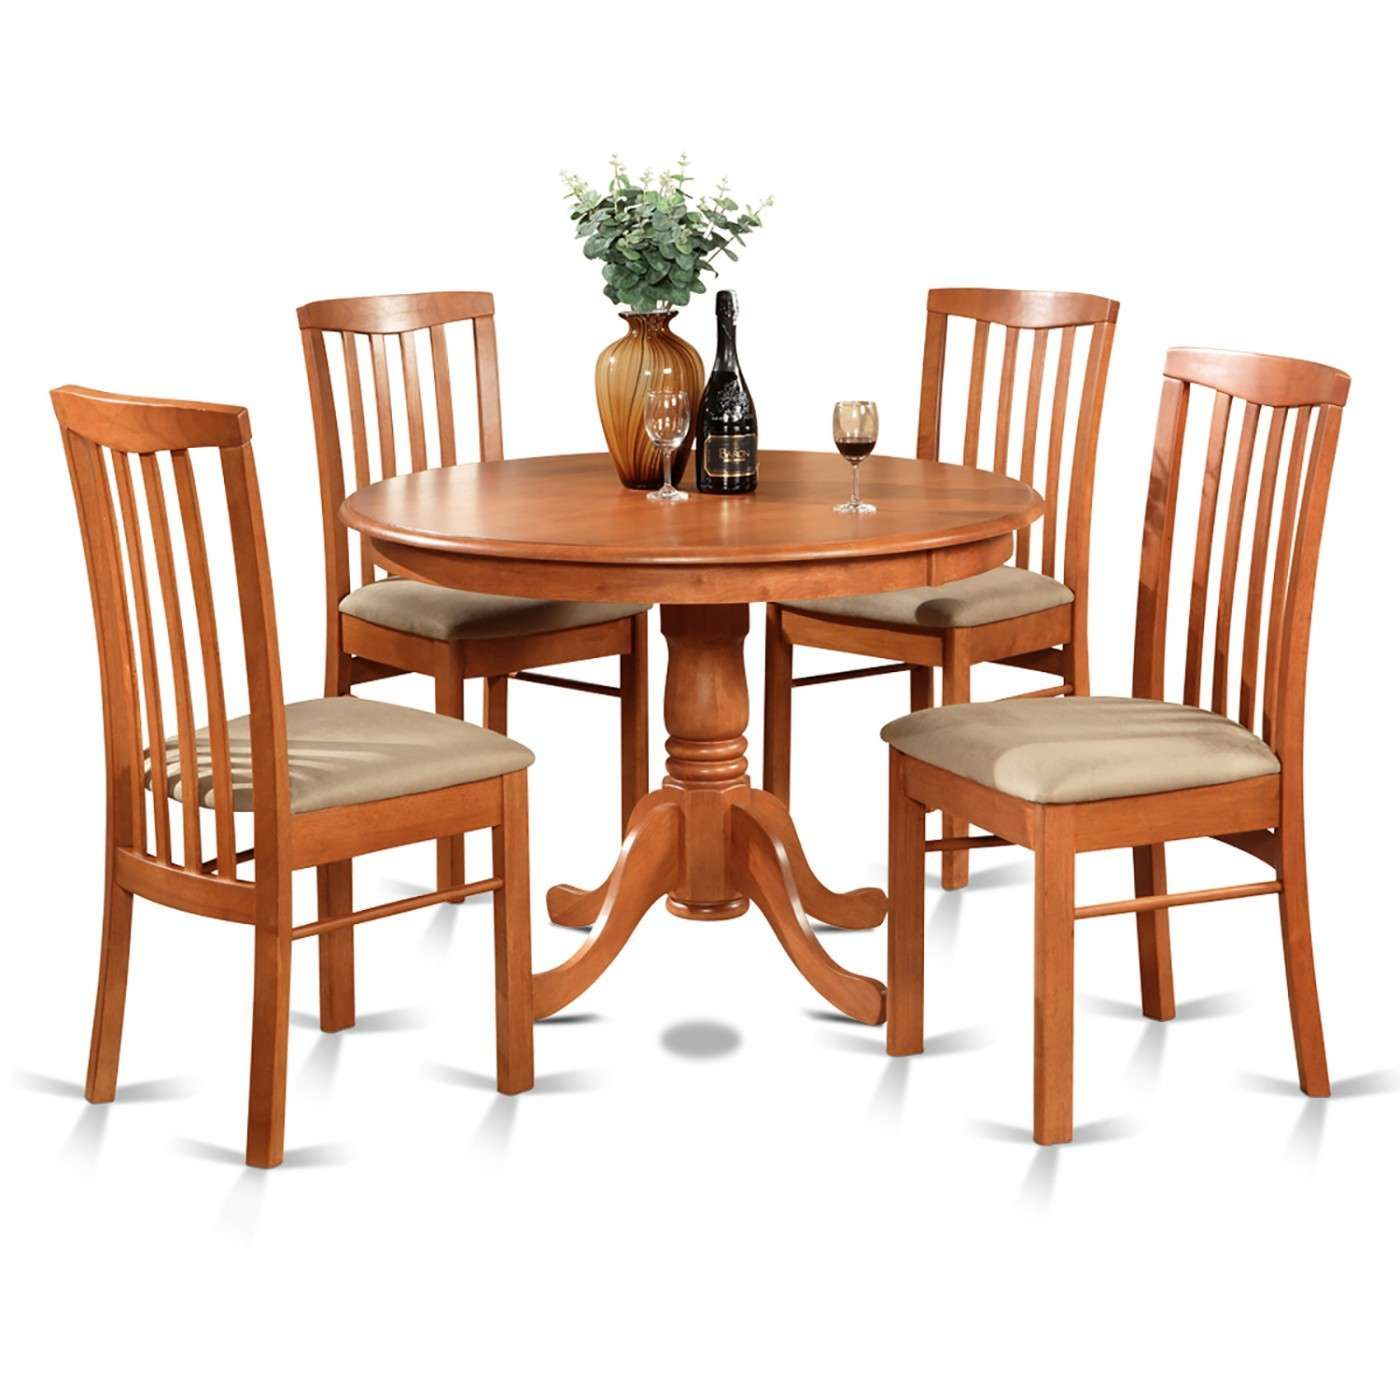 Hartland 5 Piece Kitchen Nook Dining Set  Round Table And 4 Fair Dining Room Chair Set Of 4 Decorating Inspiration